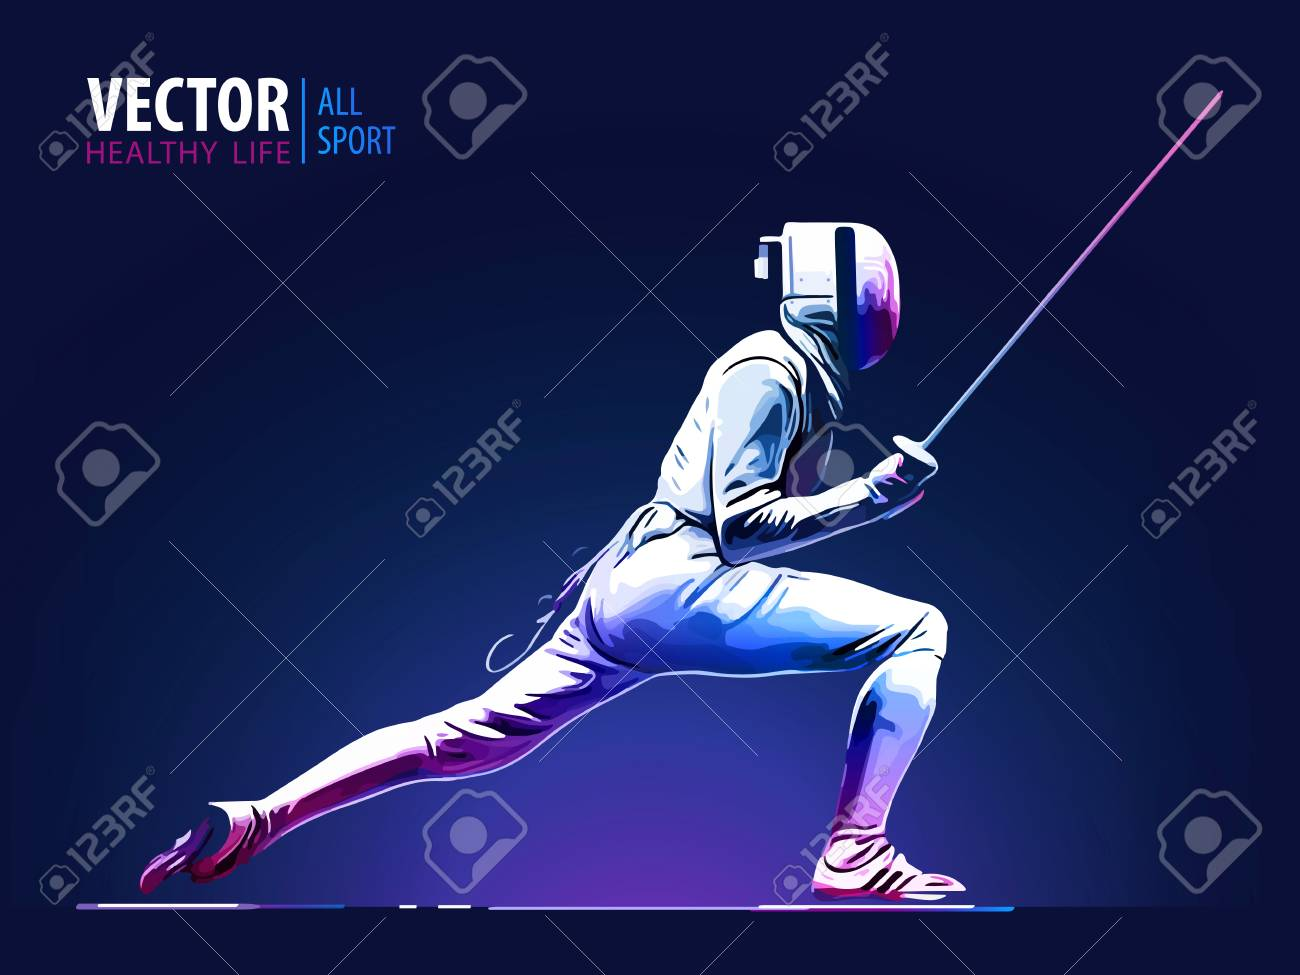 Fencer man wearing fencing suit practicing with sword. Sports arena and lense flare with seon effect vector illustration. - 90215966